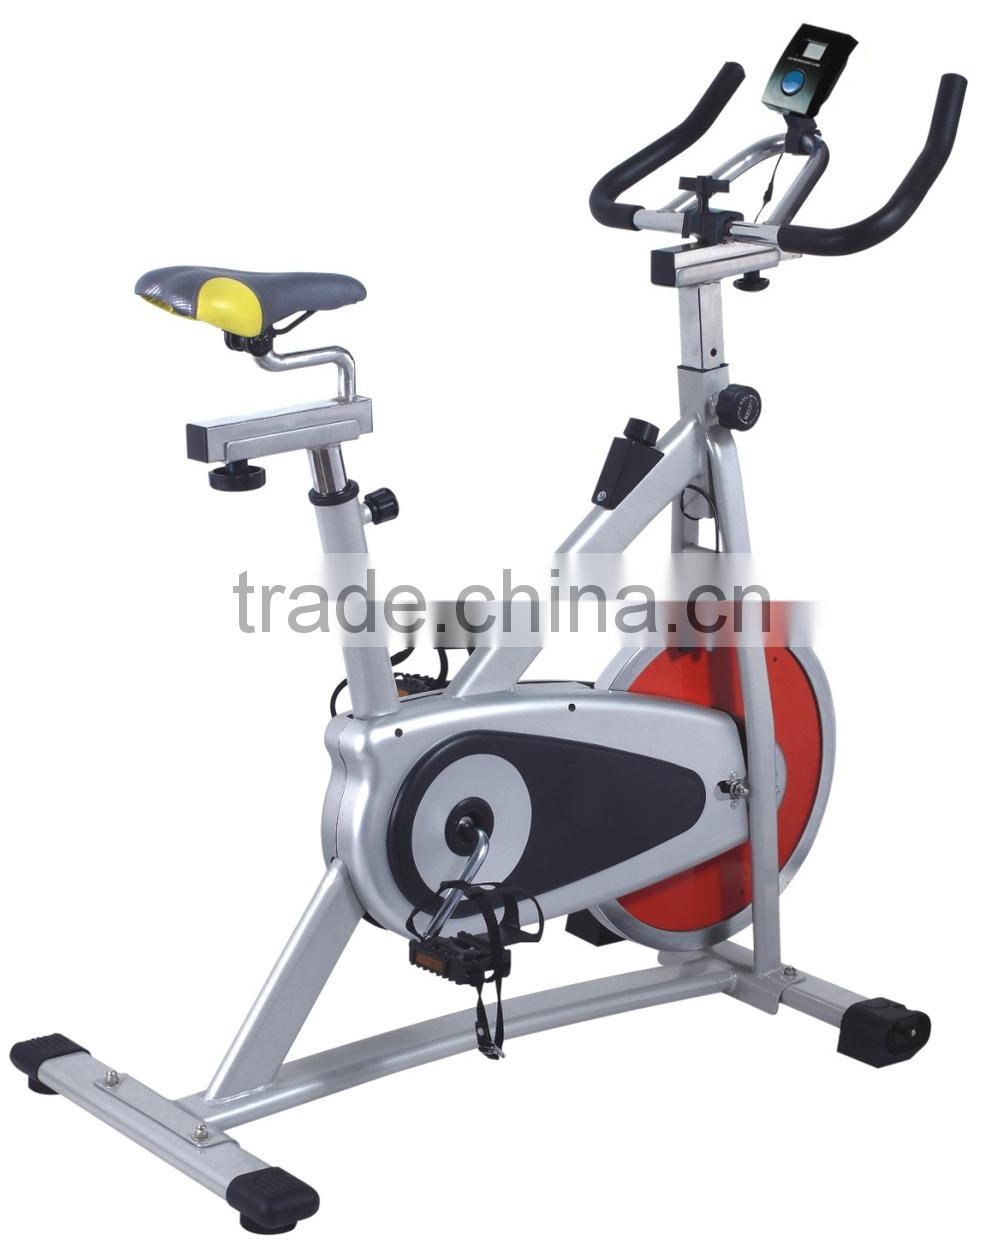 Spinner Spinning Spin Indoor Bike Commercial Gym Equipment SB460A